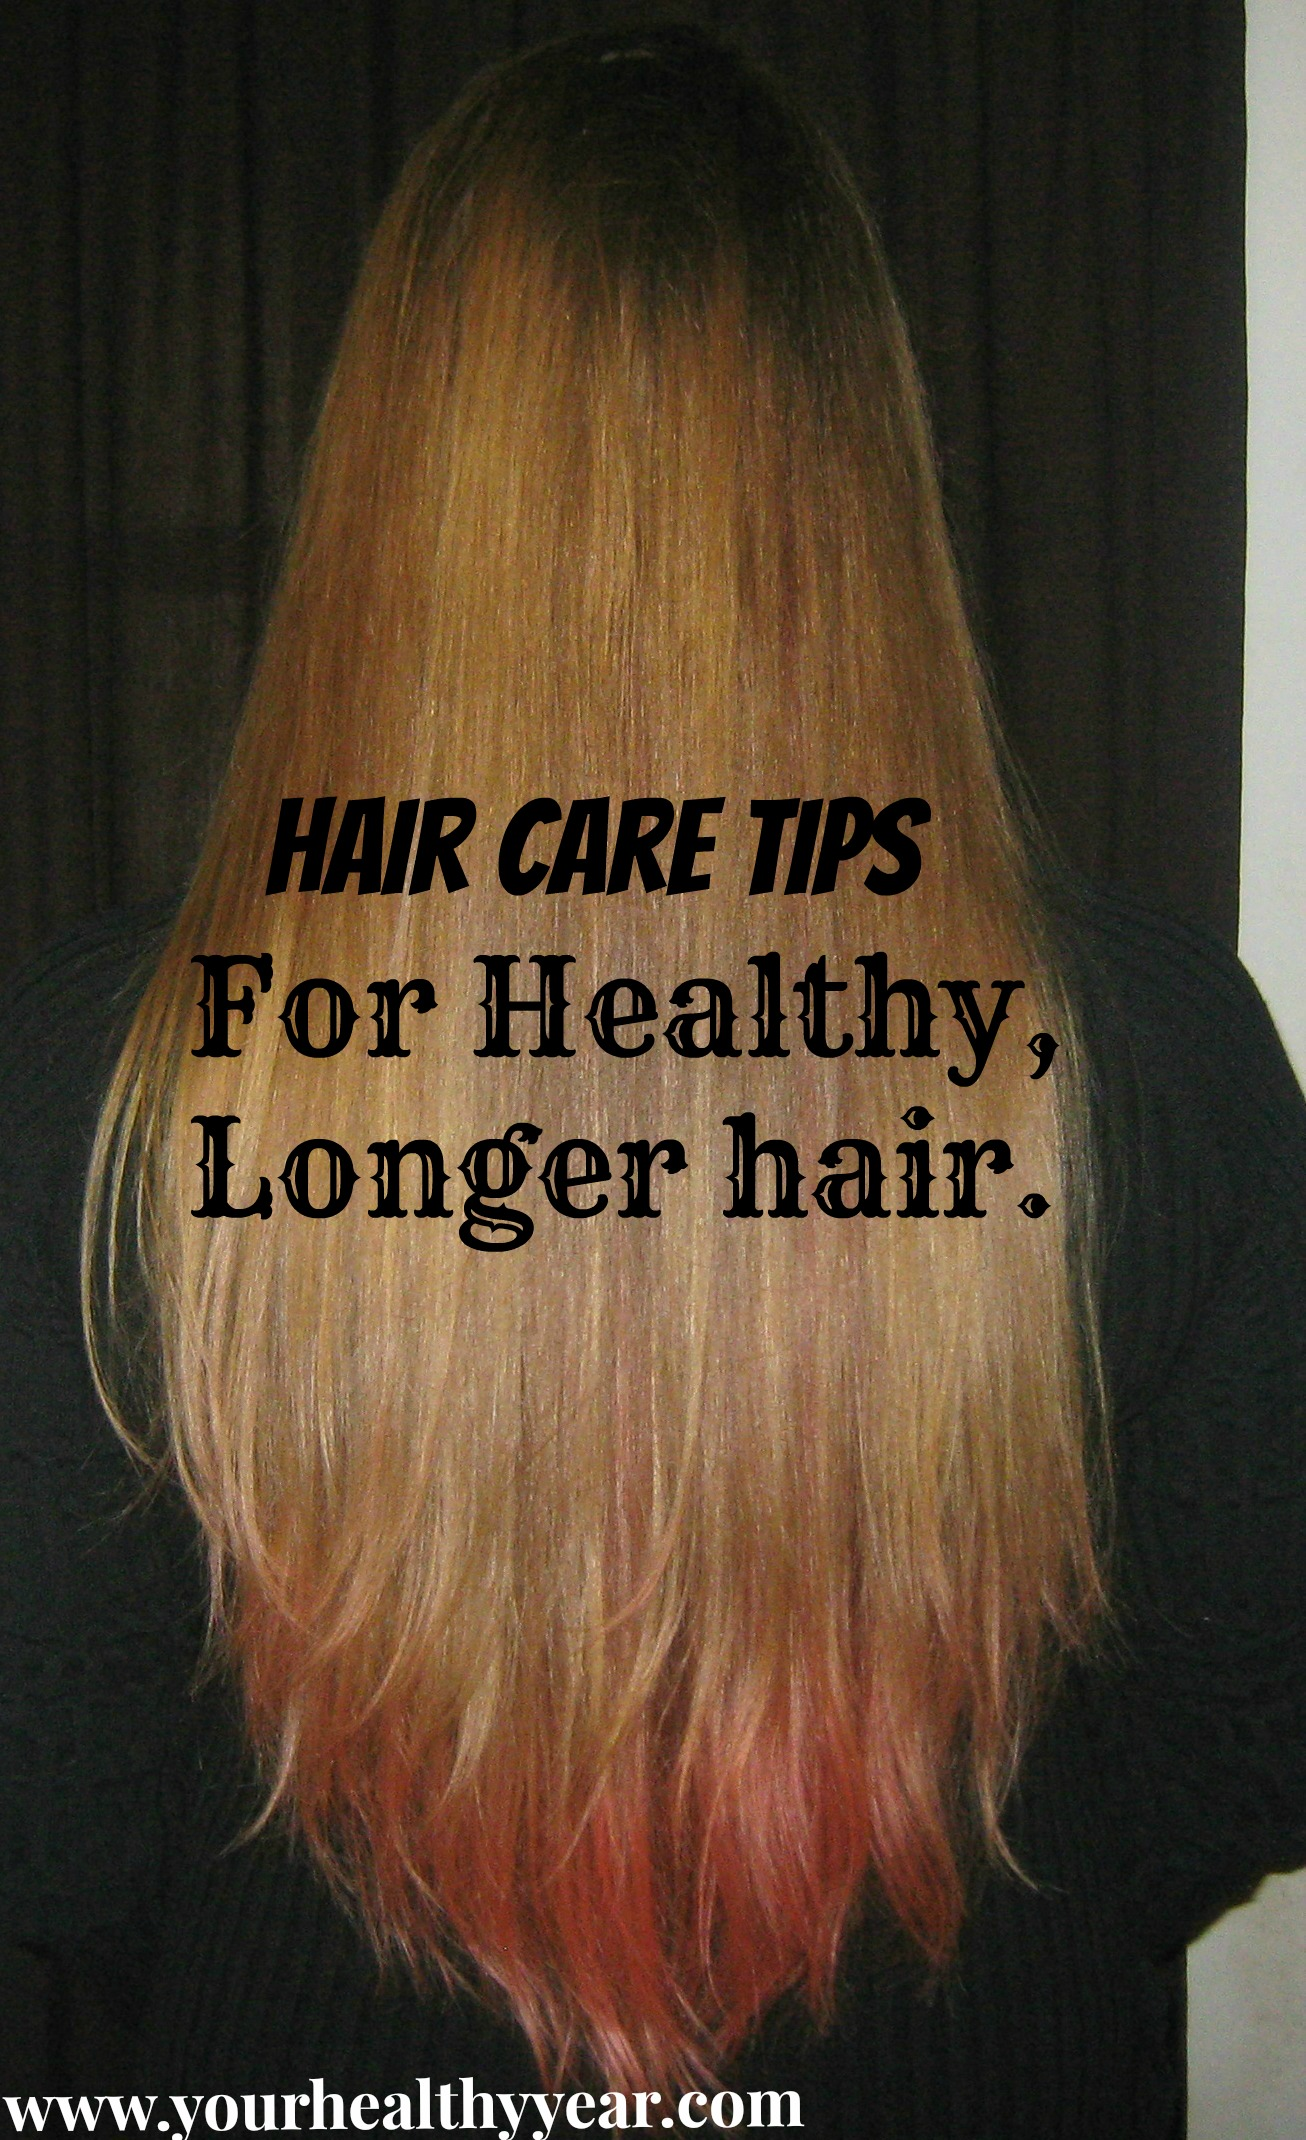 Hair Care Tips for Healthy and longer hair.